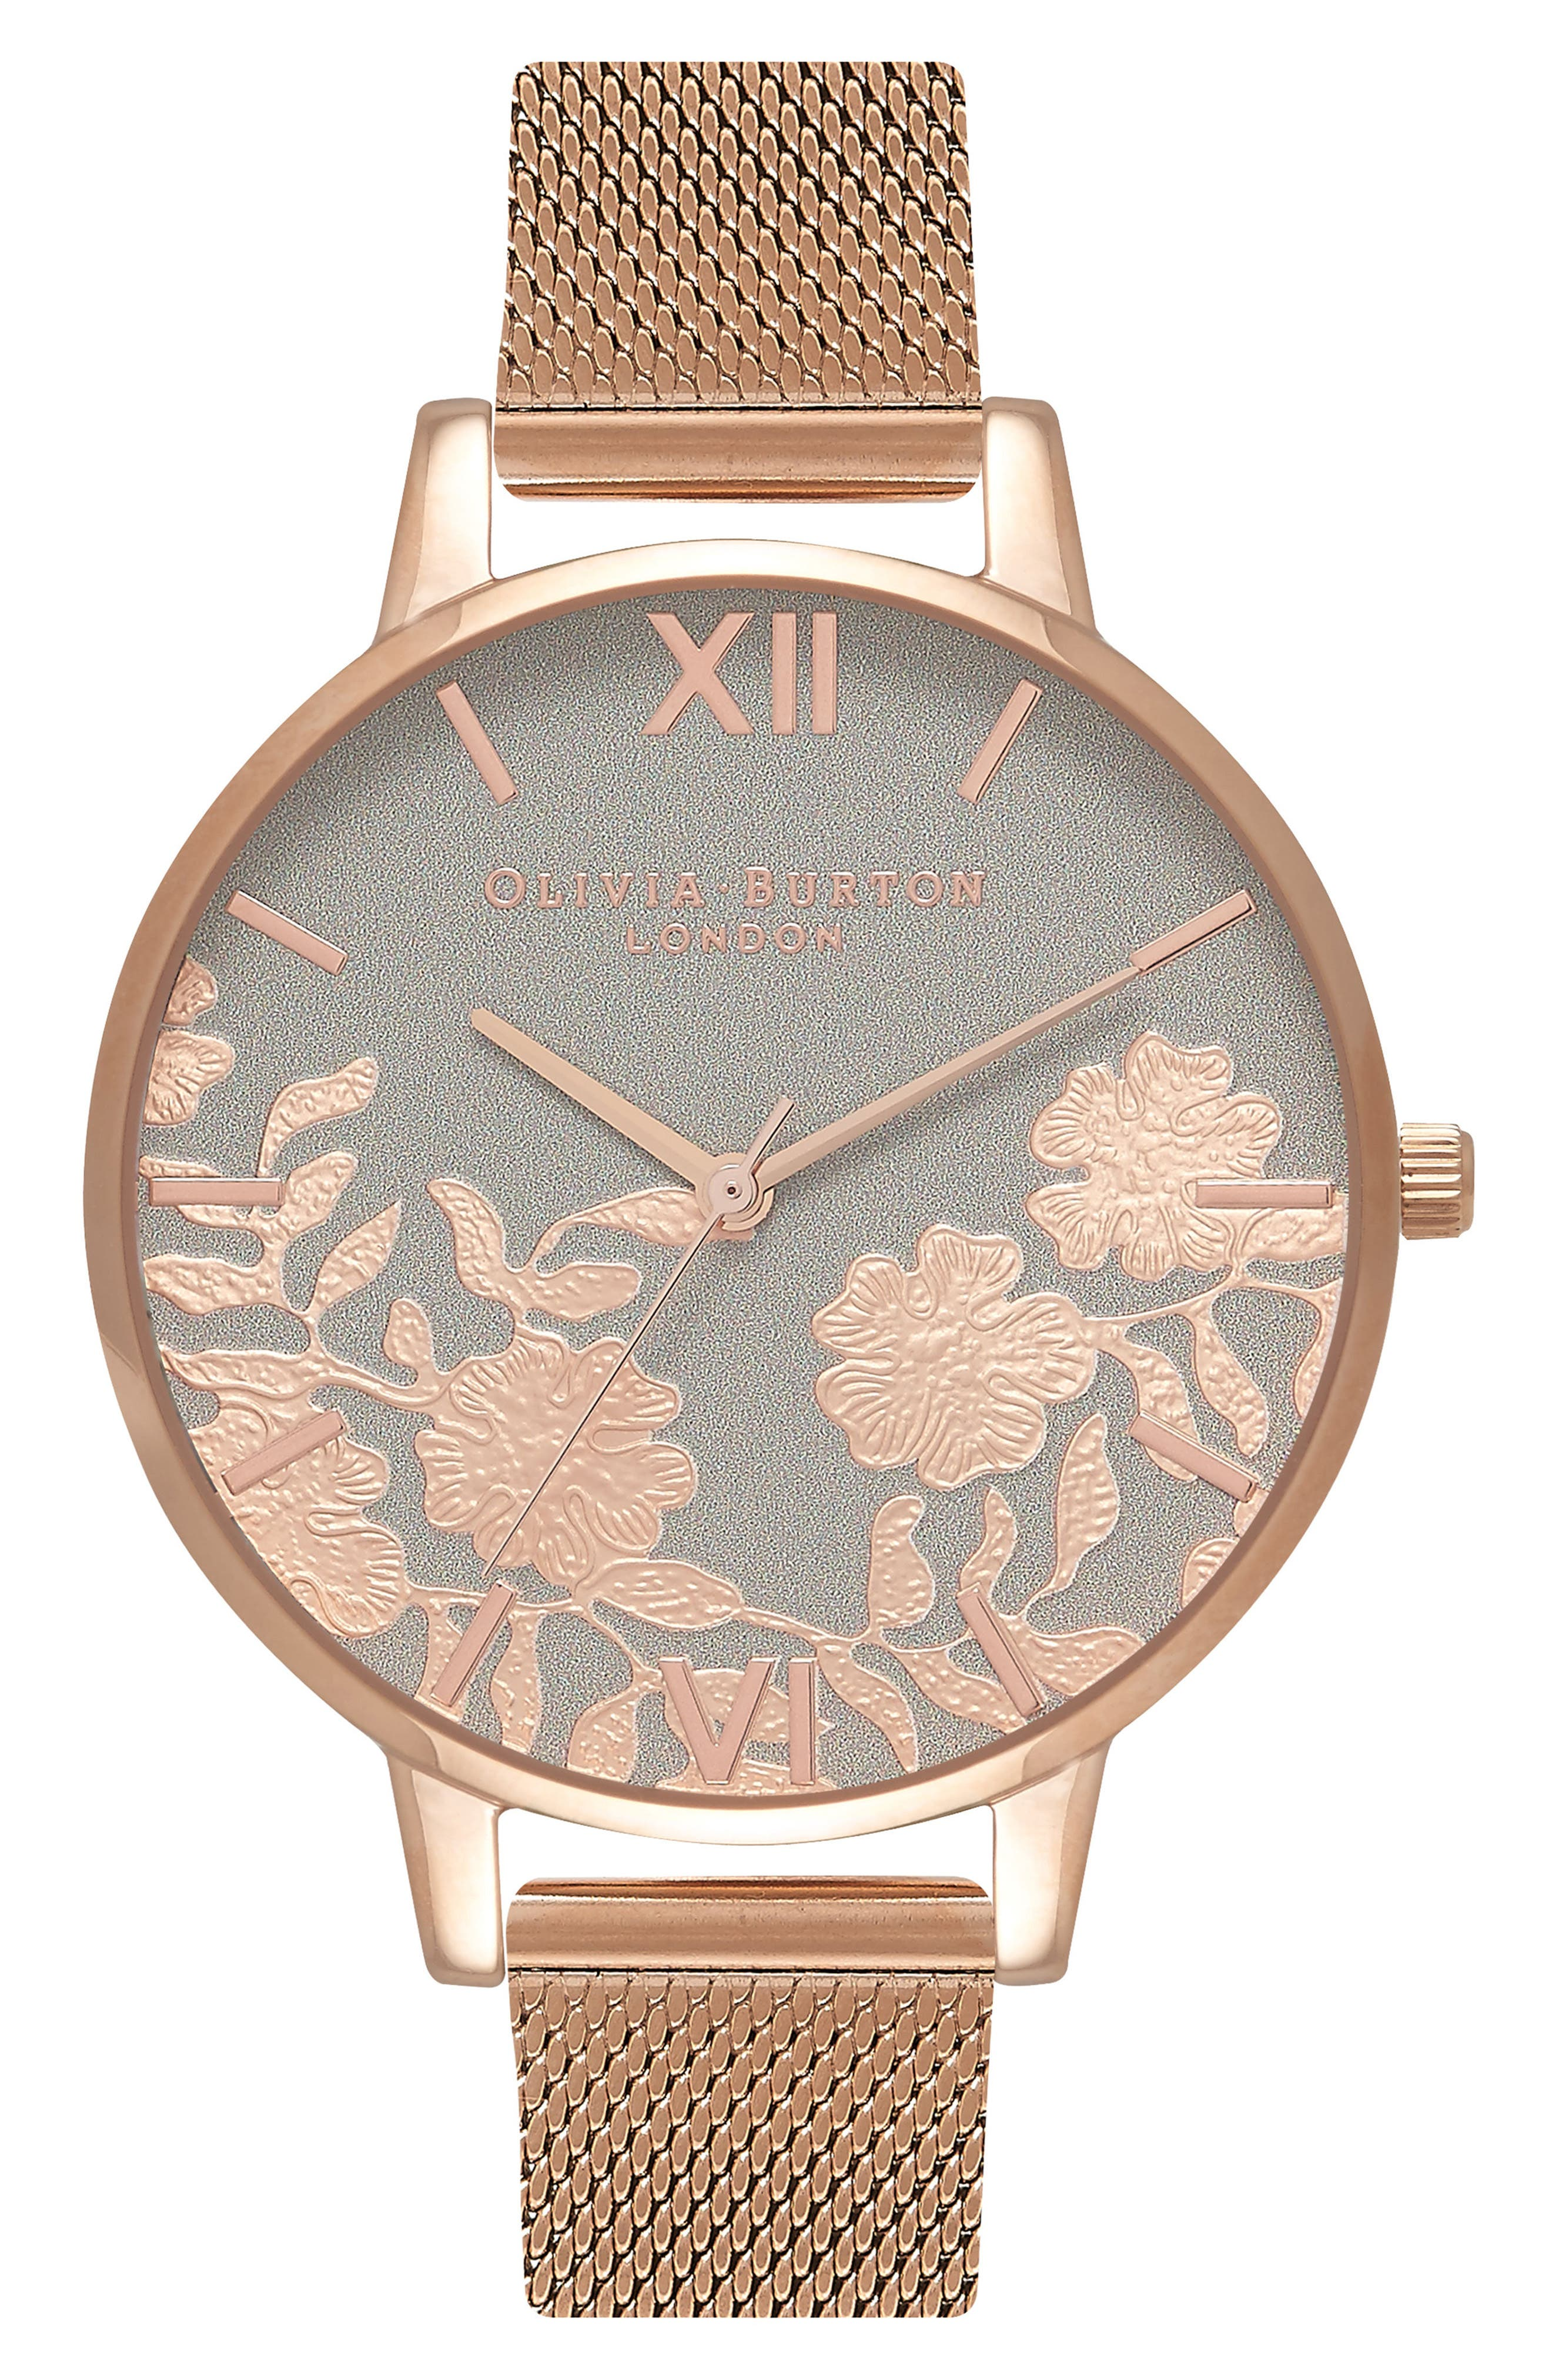 Lace Detail Mesh Strap Watch, 38mm,                         Main,                         color, Rose Gold/ Grey/ Rose Gold